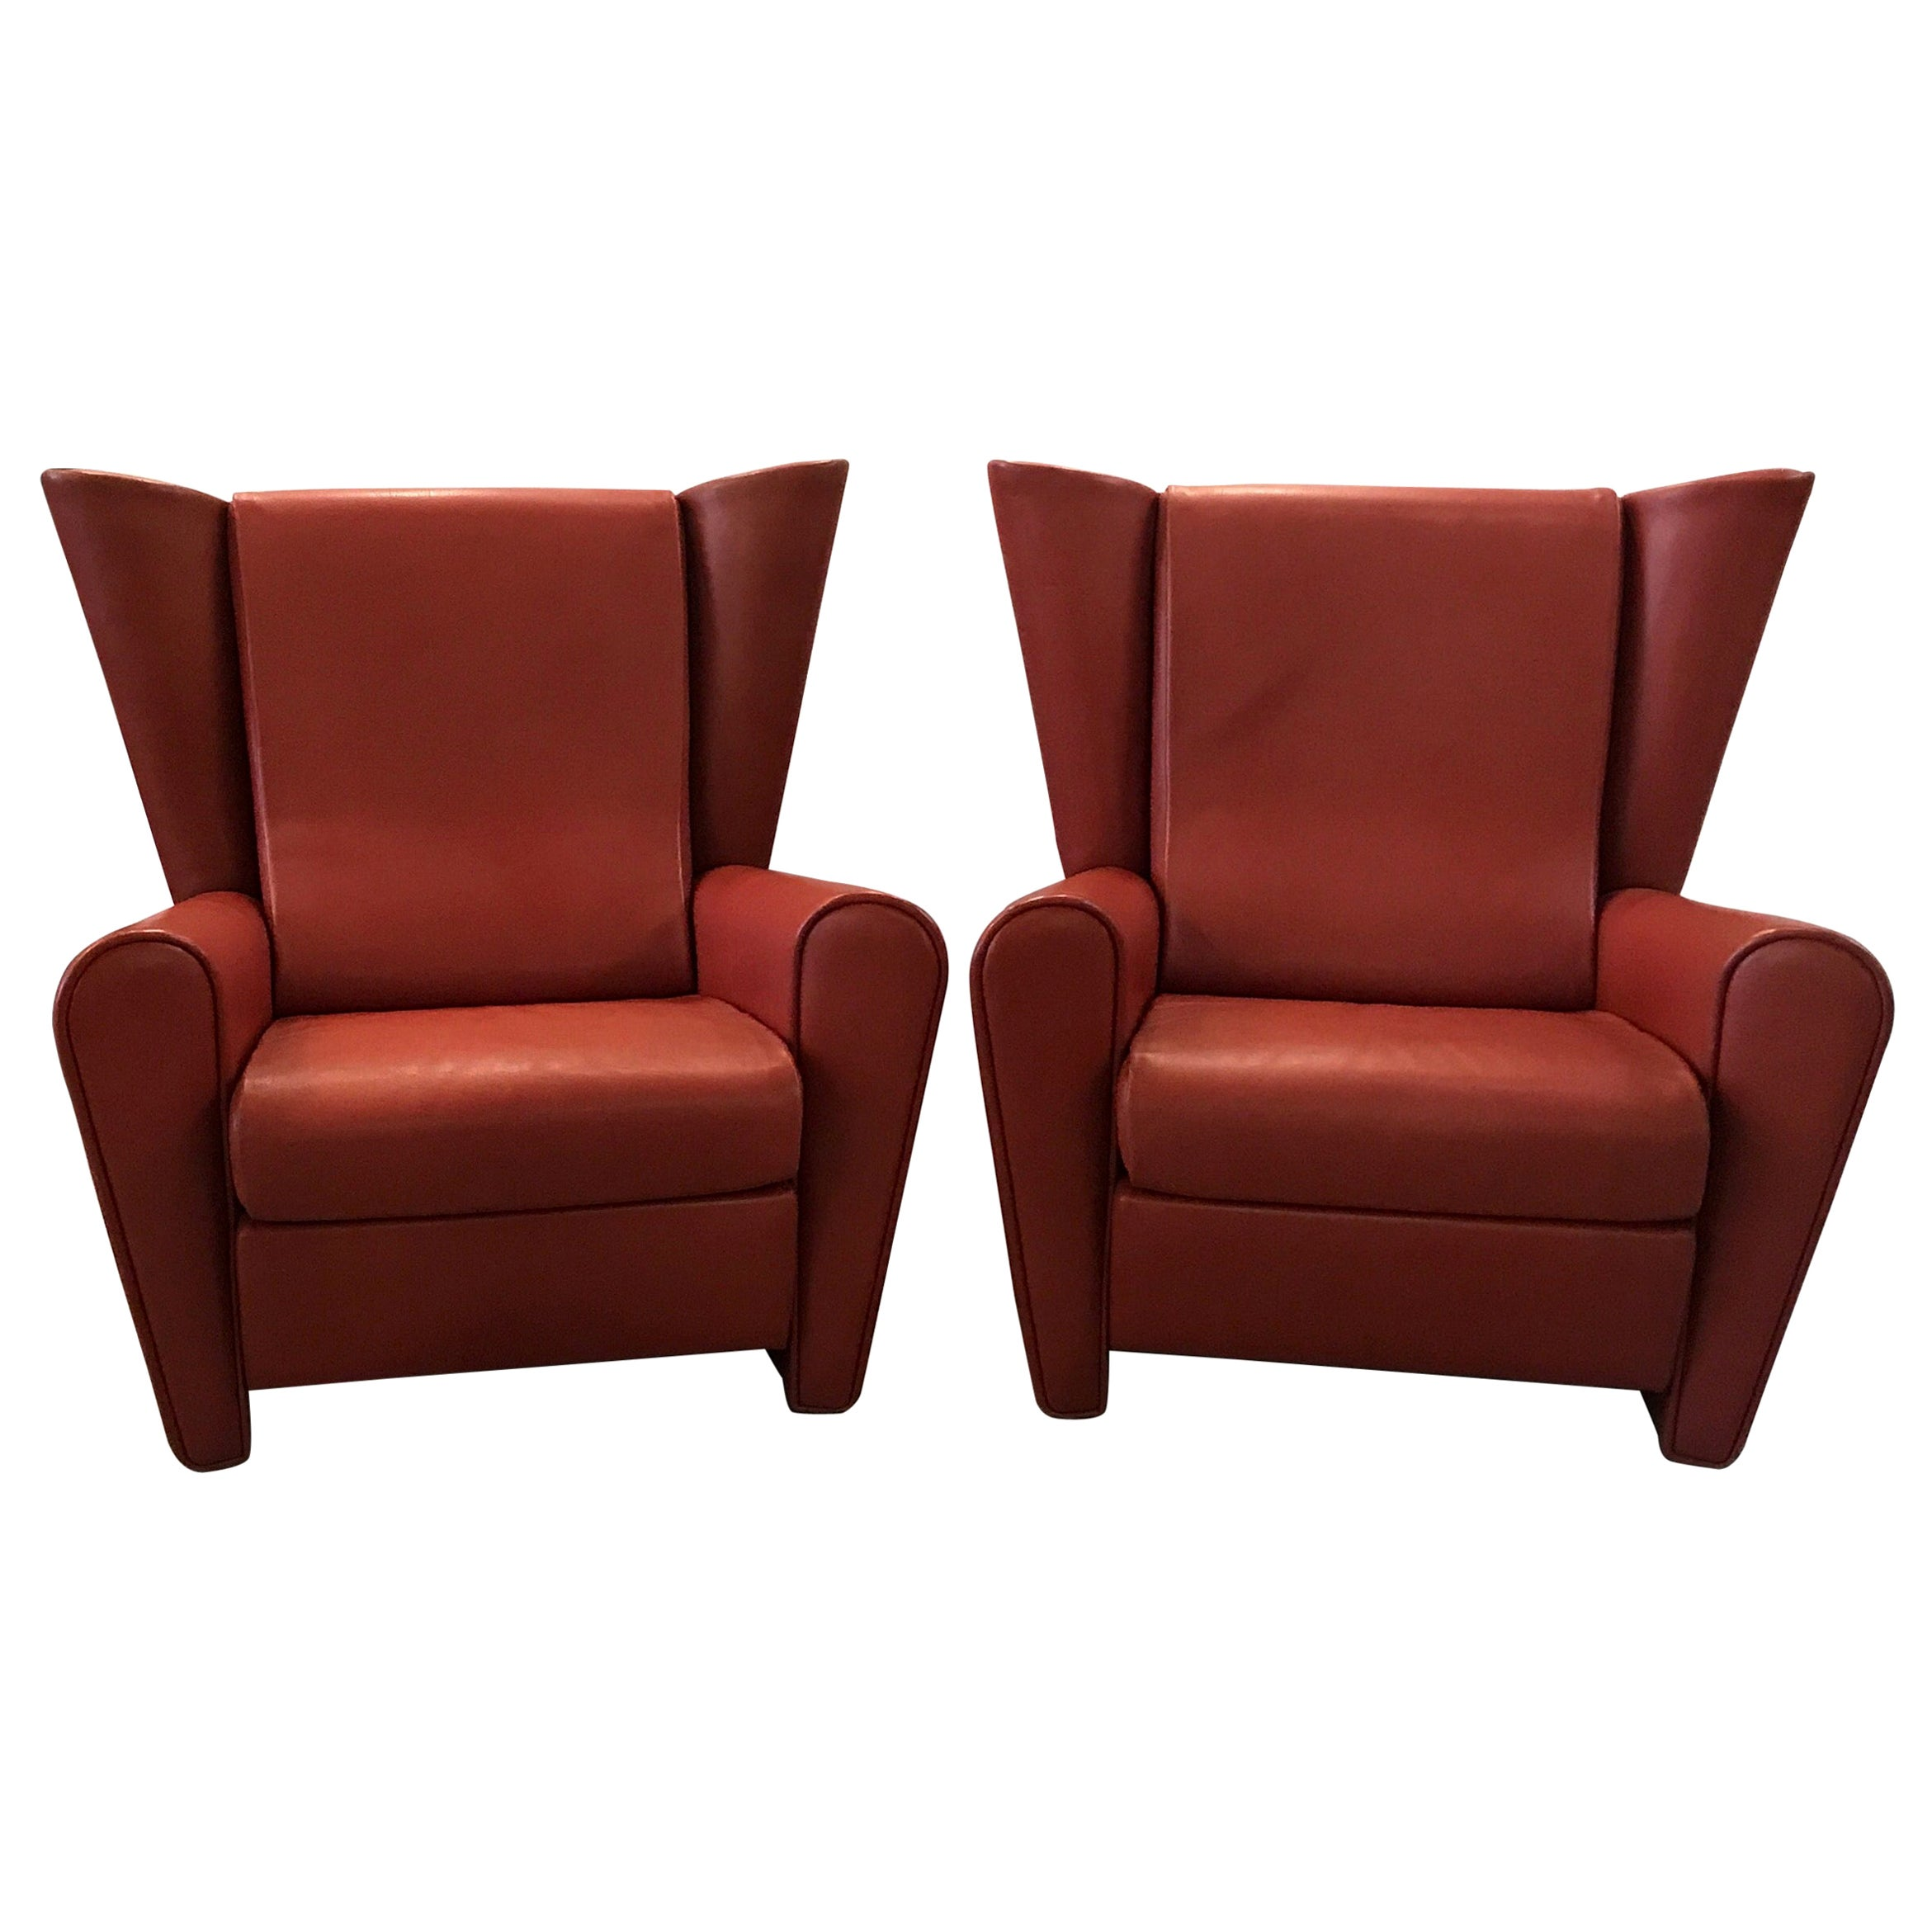 Large Pair of Alessandro Mendini Lounge Chairs for Matteo Grassi